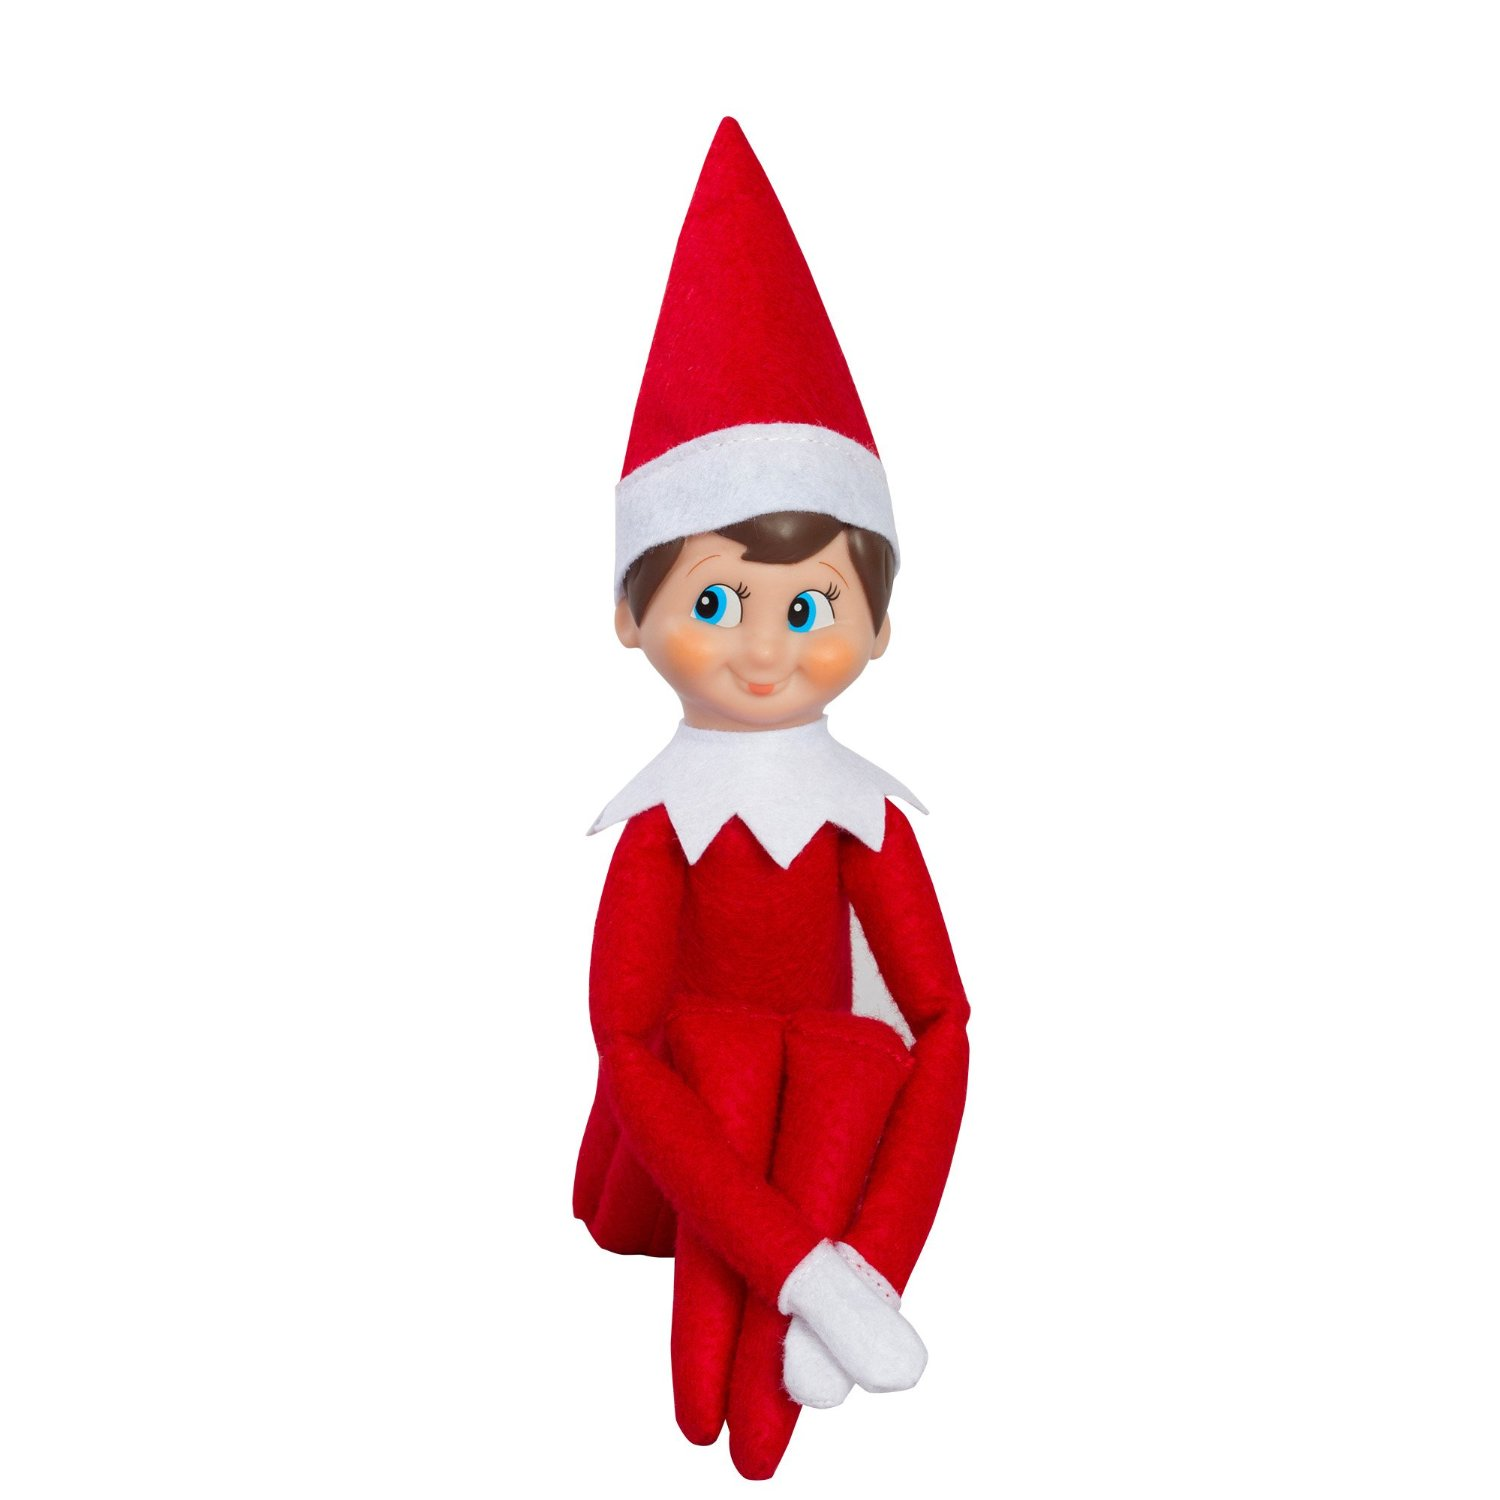 Should Parents Use Elf On The Shelf Technology To Monitor